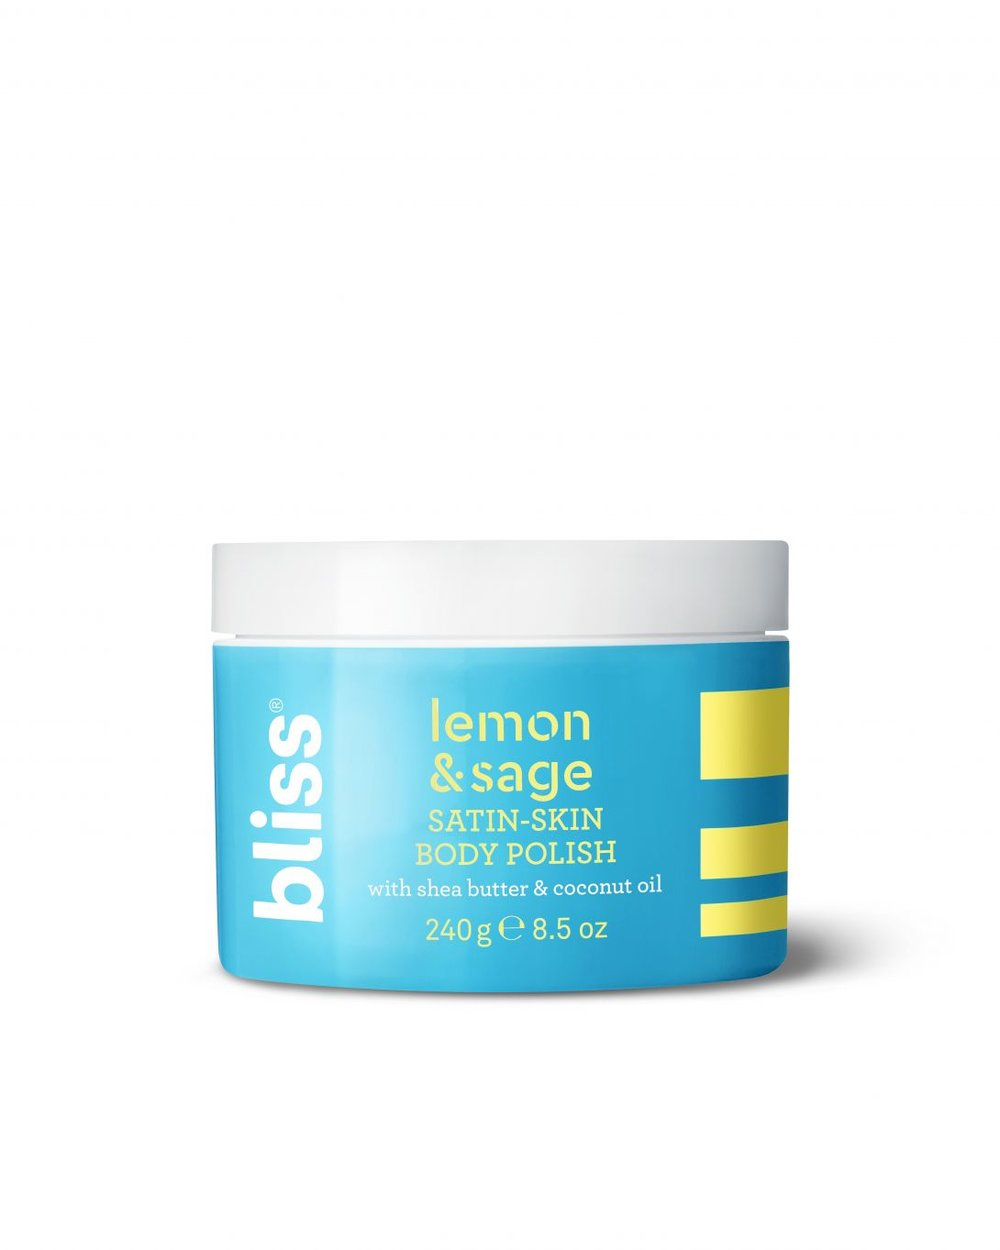 BlissLemon2.jpg